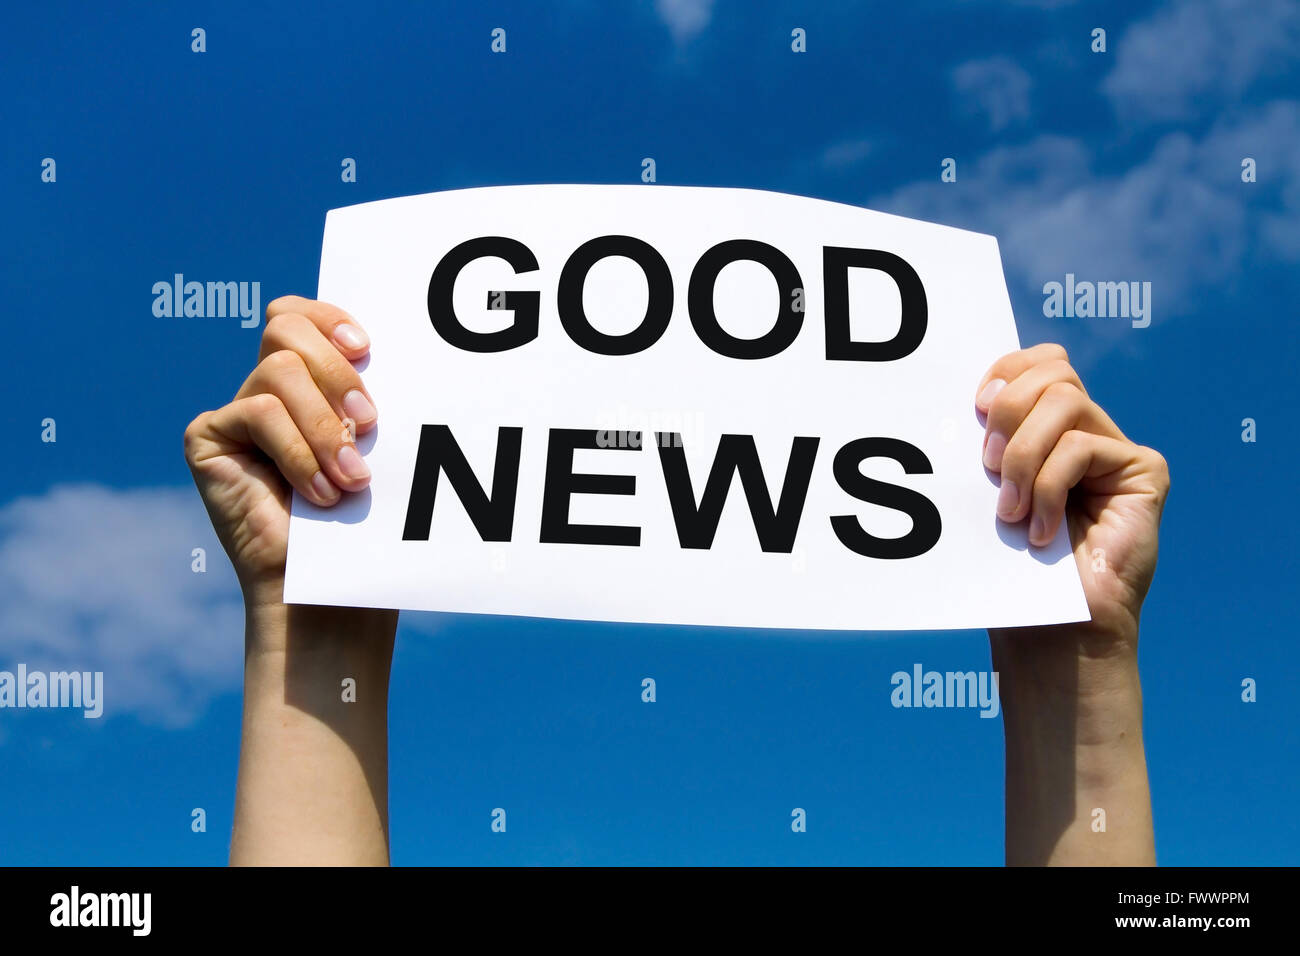 good news, hands holding paper with text concept, positive media - Stock Image